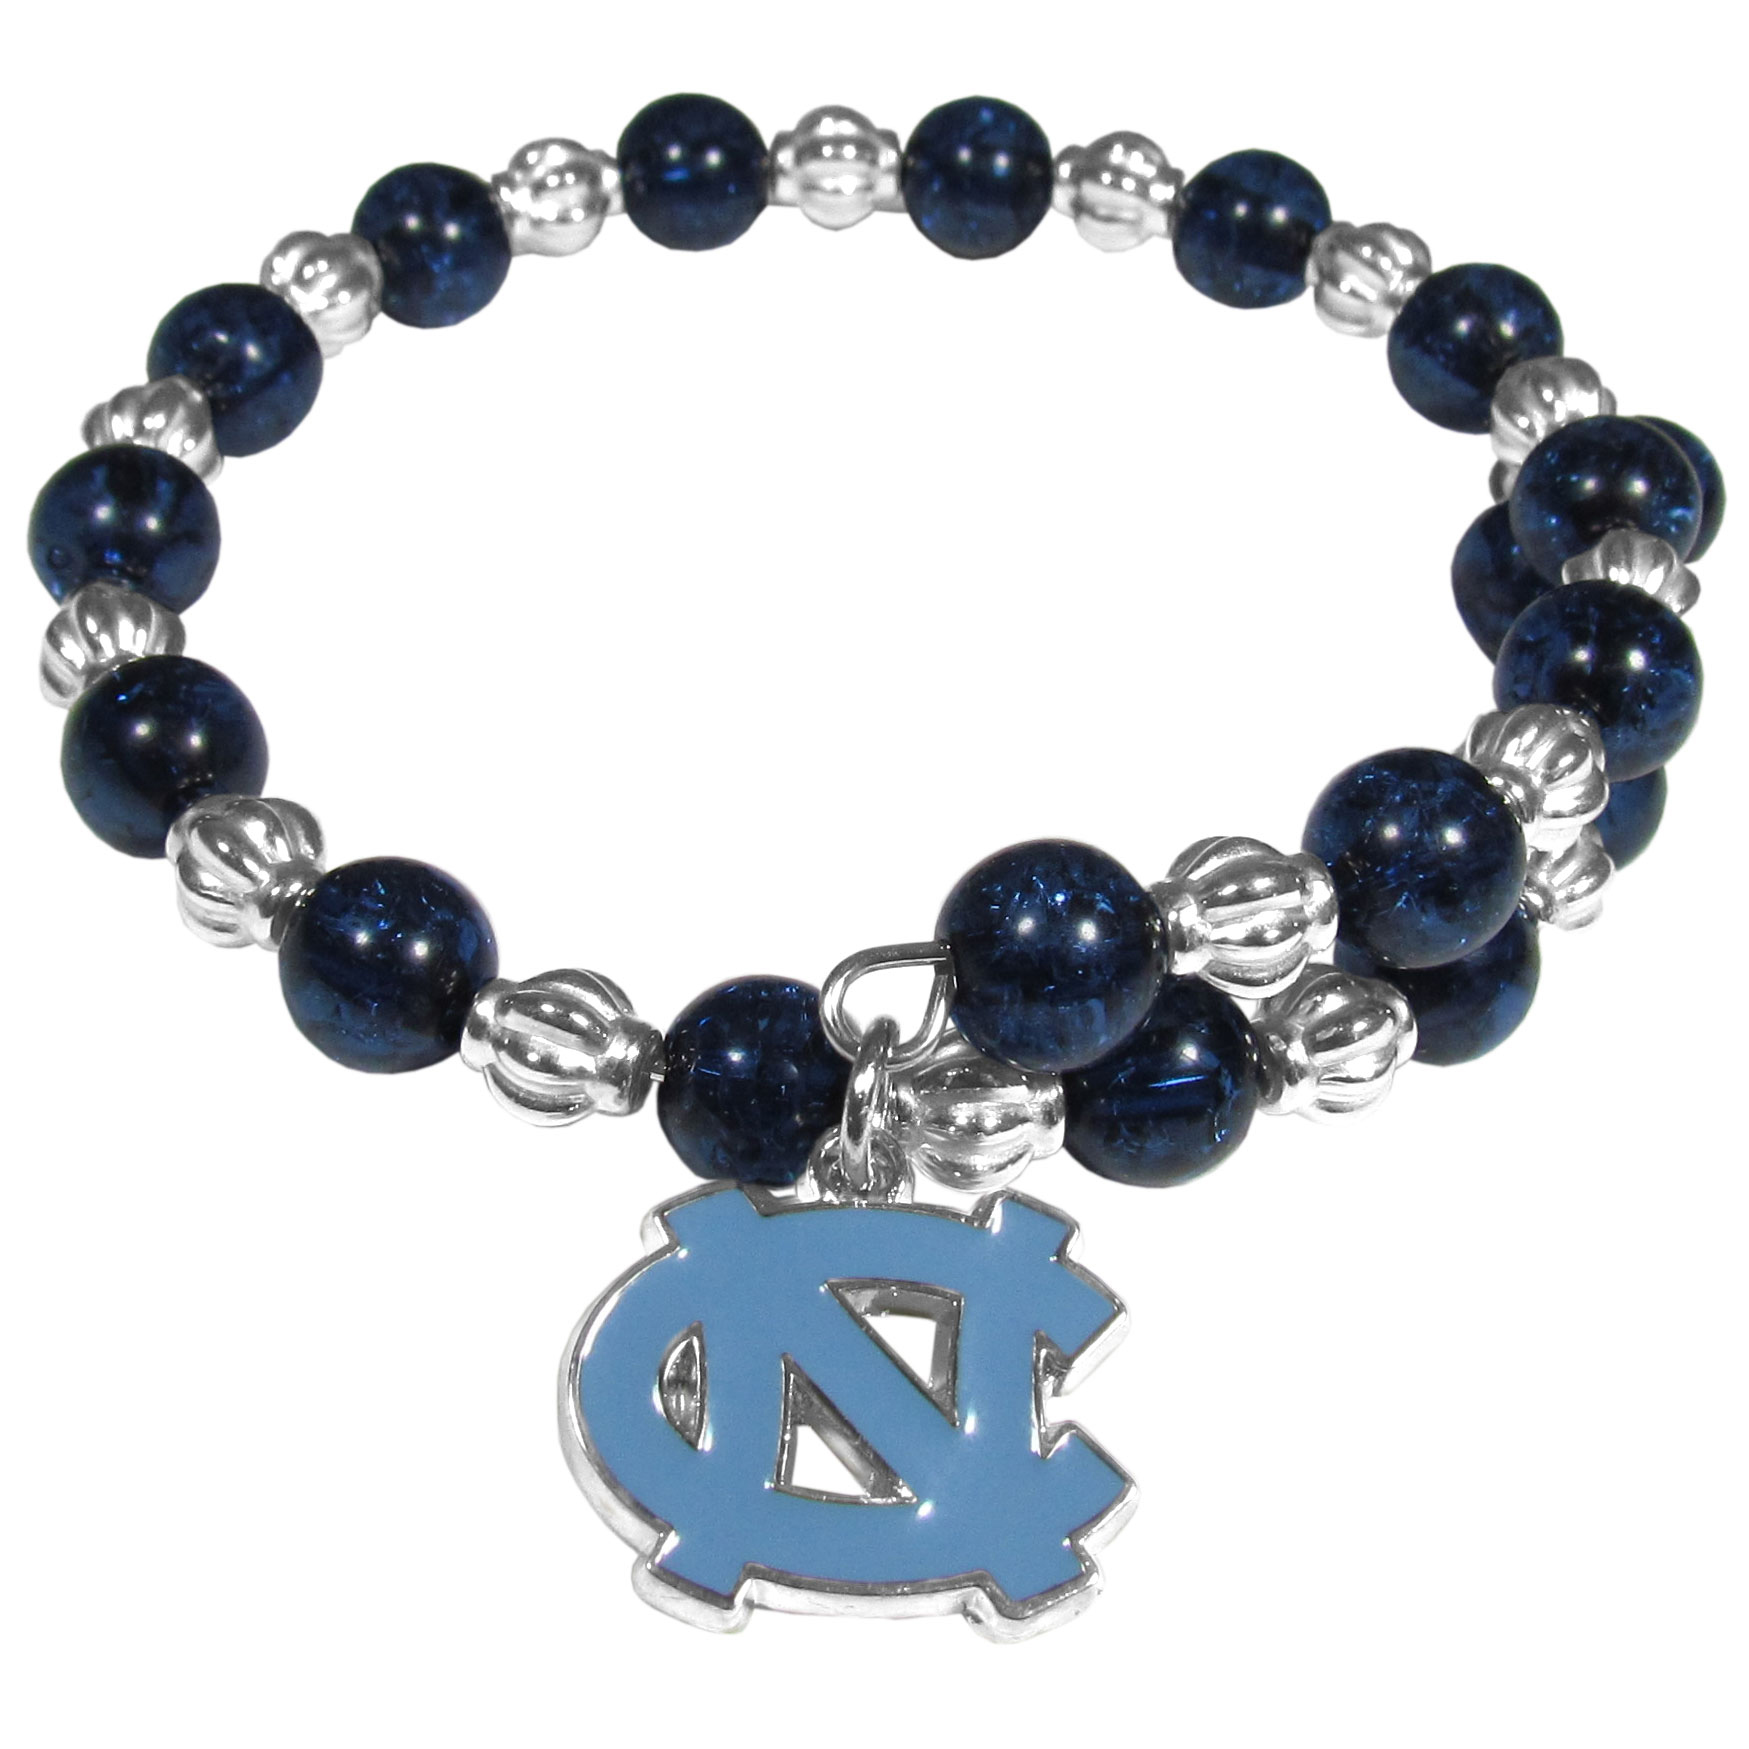 N. Carolina Tar Heels Bead Memory Wire Bracelet - Our N. Carolina Tar Heels memory wire bead bracelet is trendy way to show off your love of the game. The double wrap bracelet is completely covered in 7.5 mm crystals that are broken up with silvertoned beads creating a designer look with a sporty twist. The bracelet features a fully cast, metal team charm that has expertly enameled team colors. This fashion jewelry piece is a must-have for the die-hard fan that chic look that can dress up any outfit.